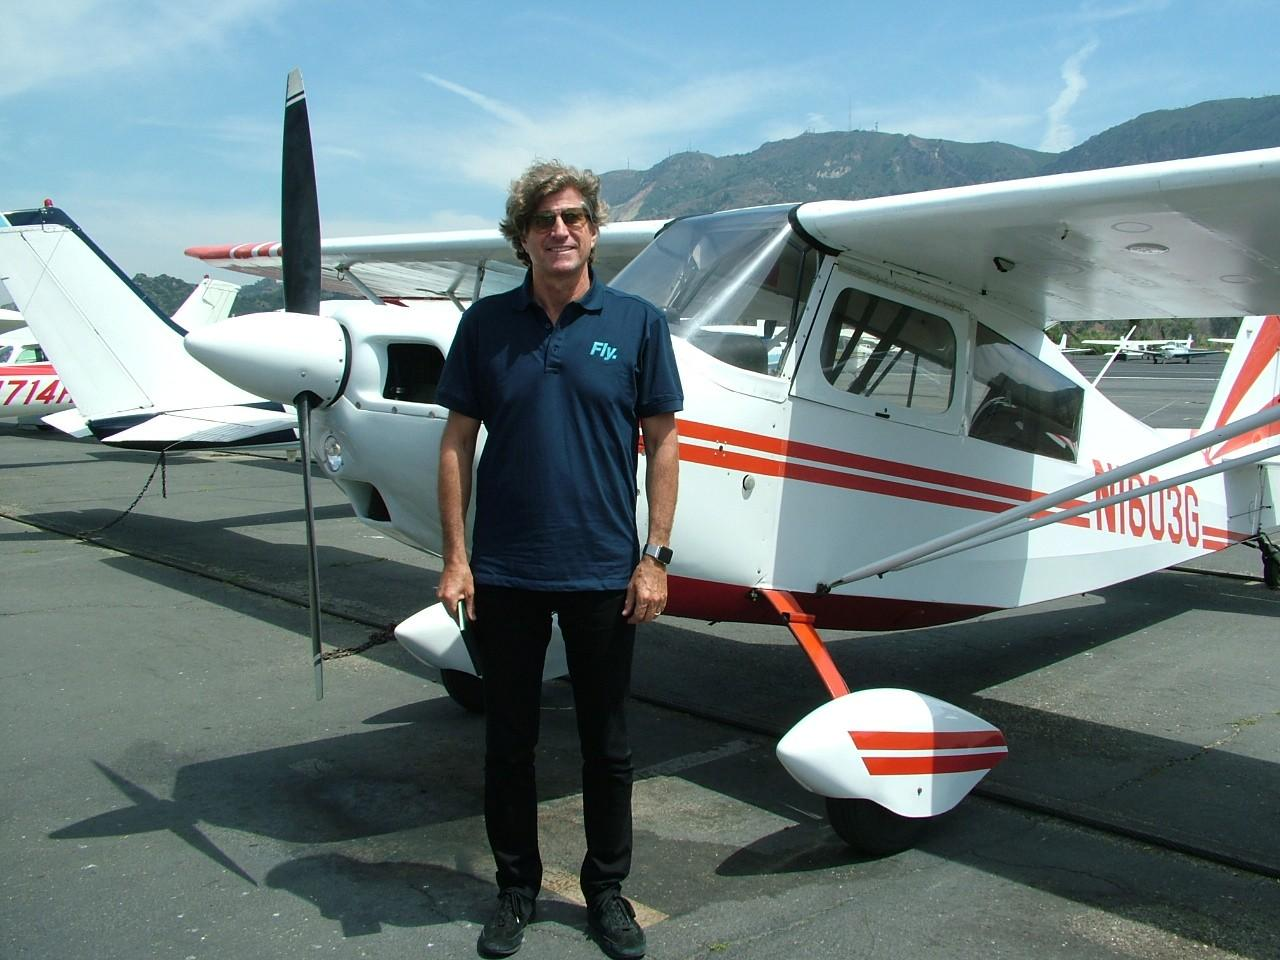 Tailwheel Endorsement - Paul Markovits